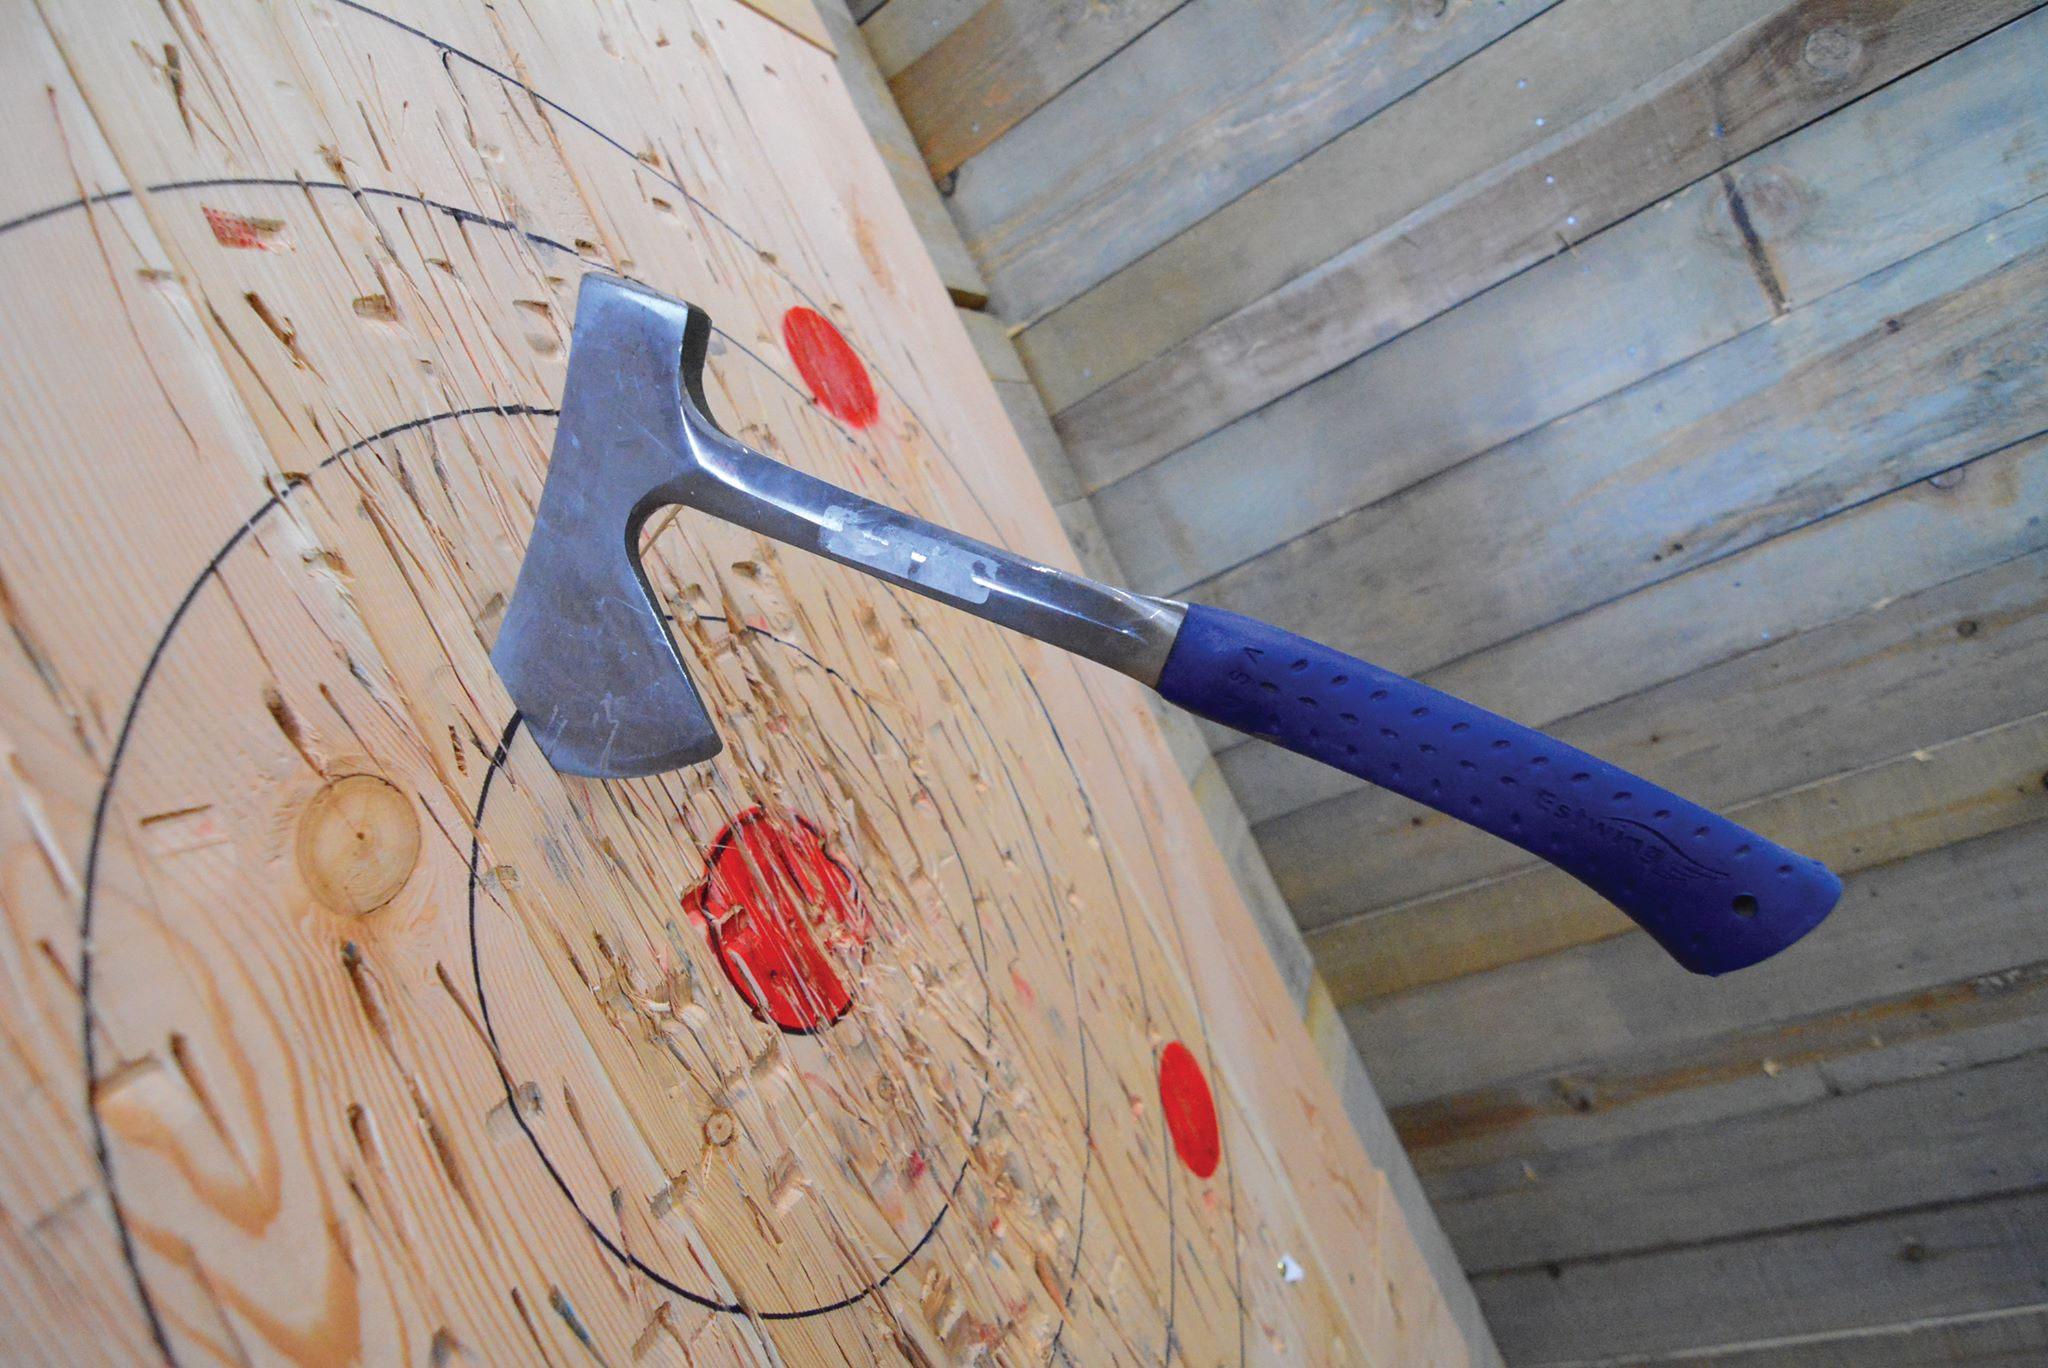 Local Axe Throwing, Go-Karting Venue to Open at MOA